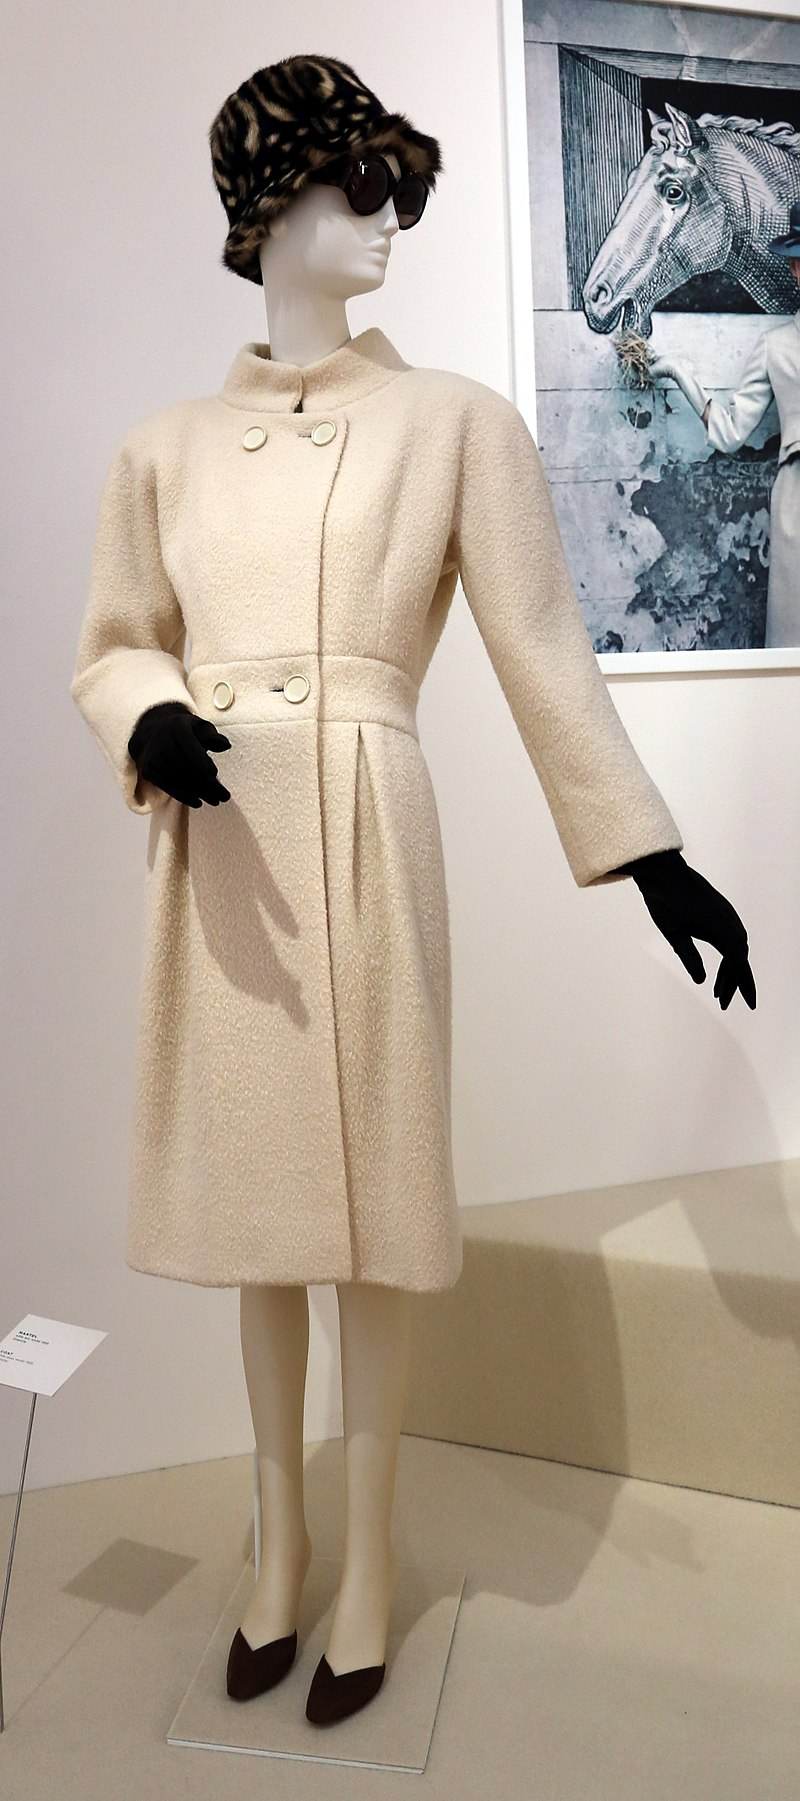 800px-Givency,_cappotto,_inverno_1959